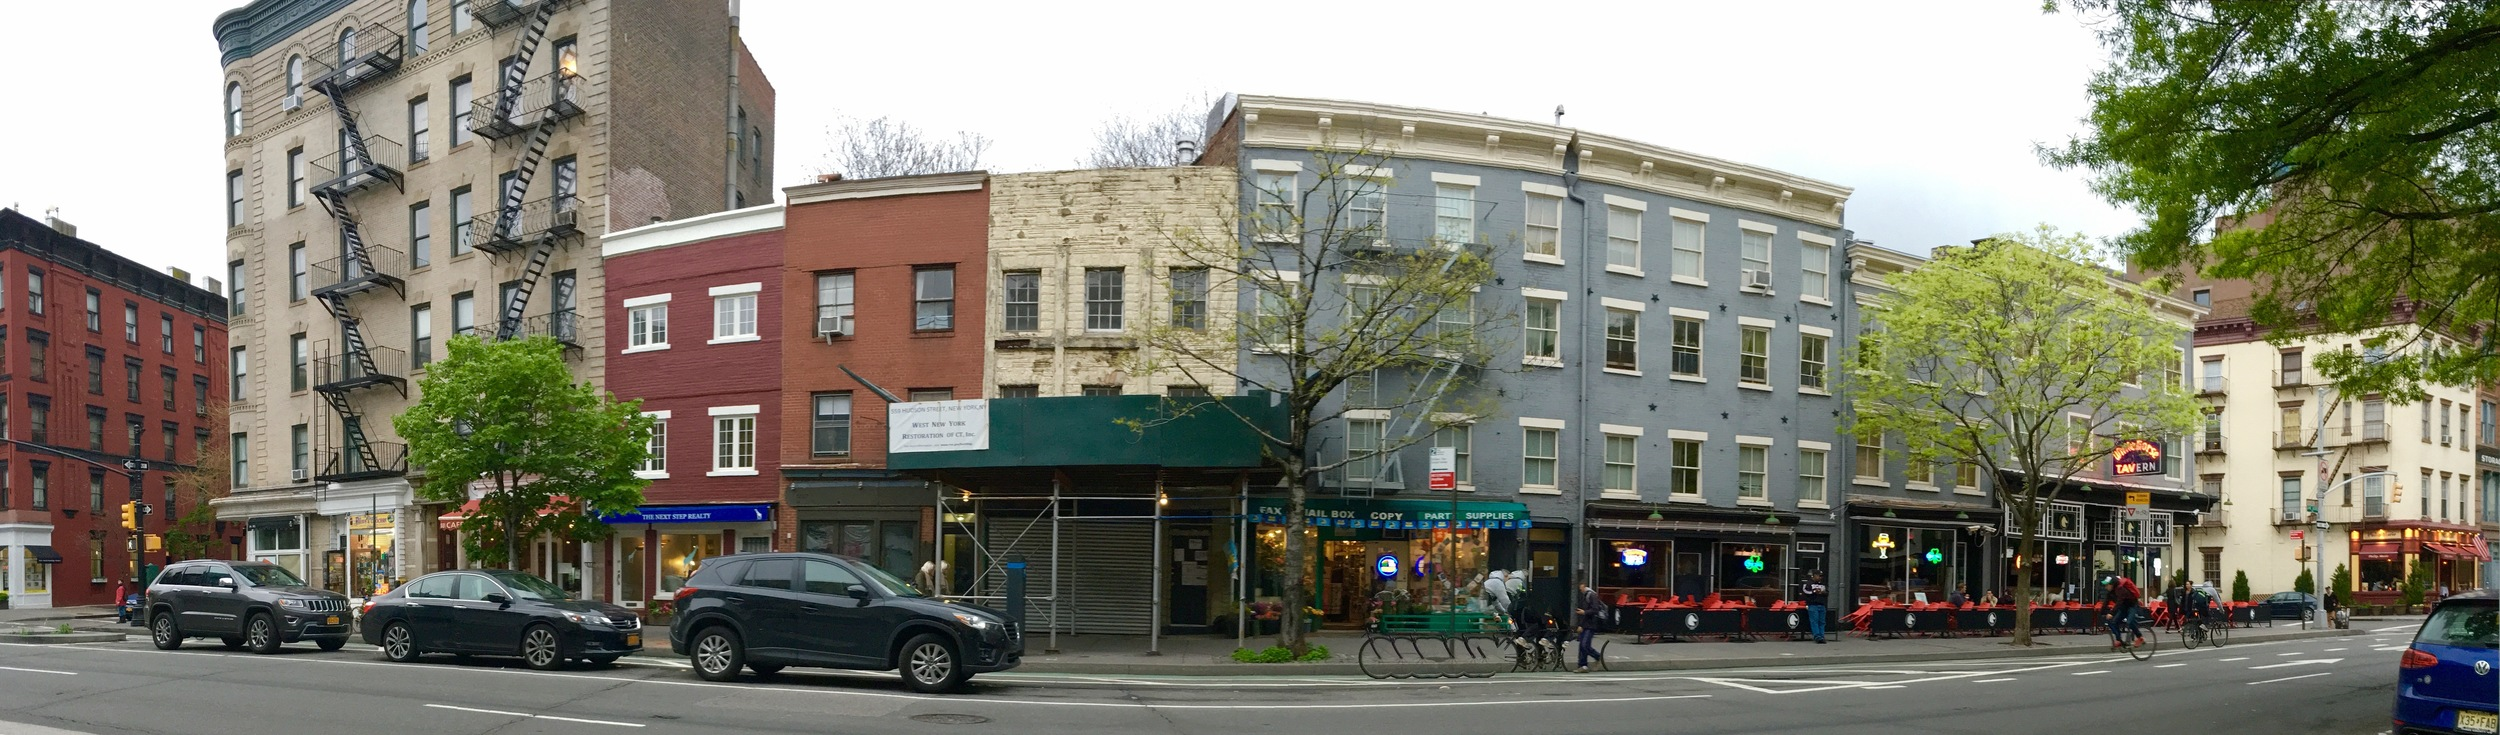 "Jane Jacobs's ever-changing West Village block, the site of the famous ""sidewalk ballet,"" on May 3, 2016. Jacobs's home, 555 Hudson Street, is the dark red one. At the end of the block on the right is the White Horse Tavern. Photo by the author."